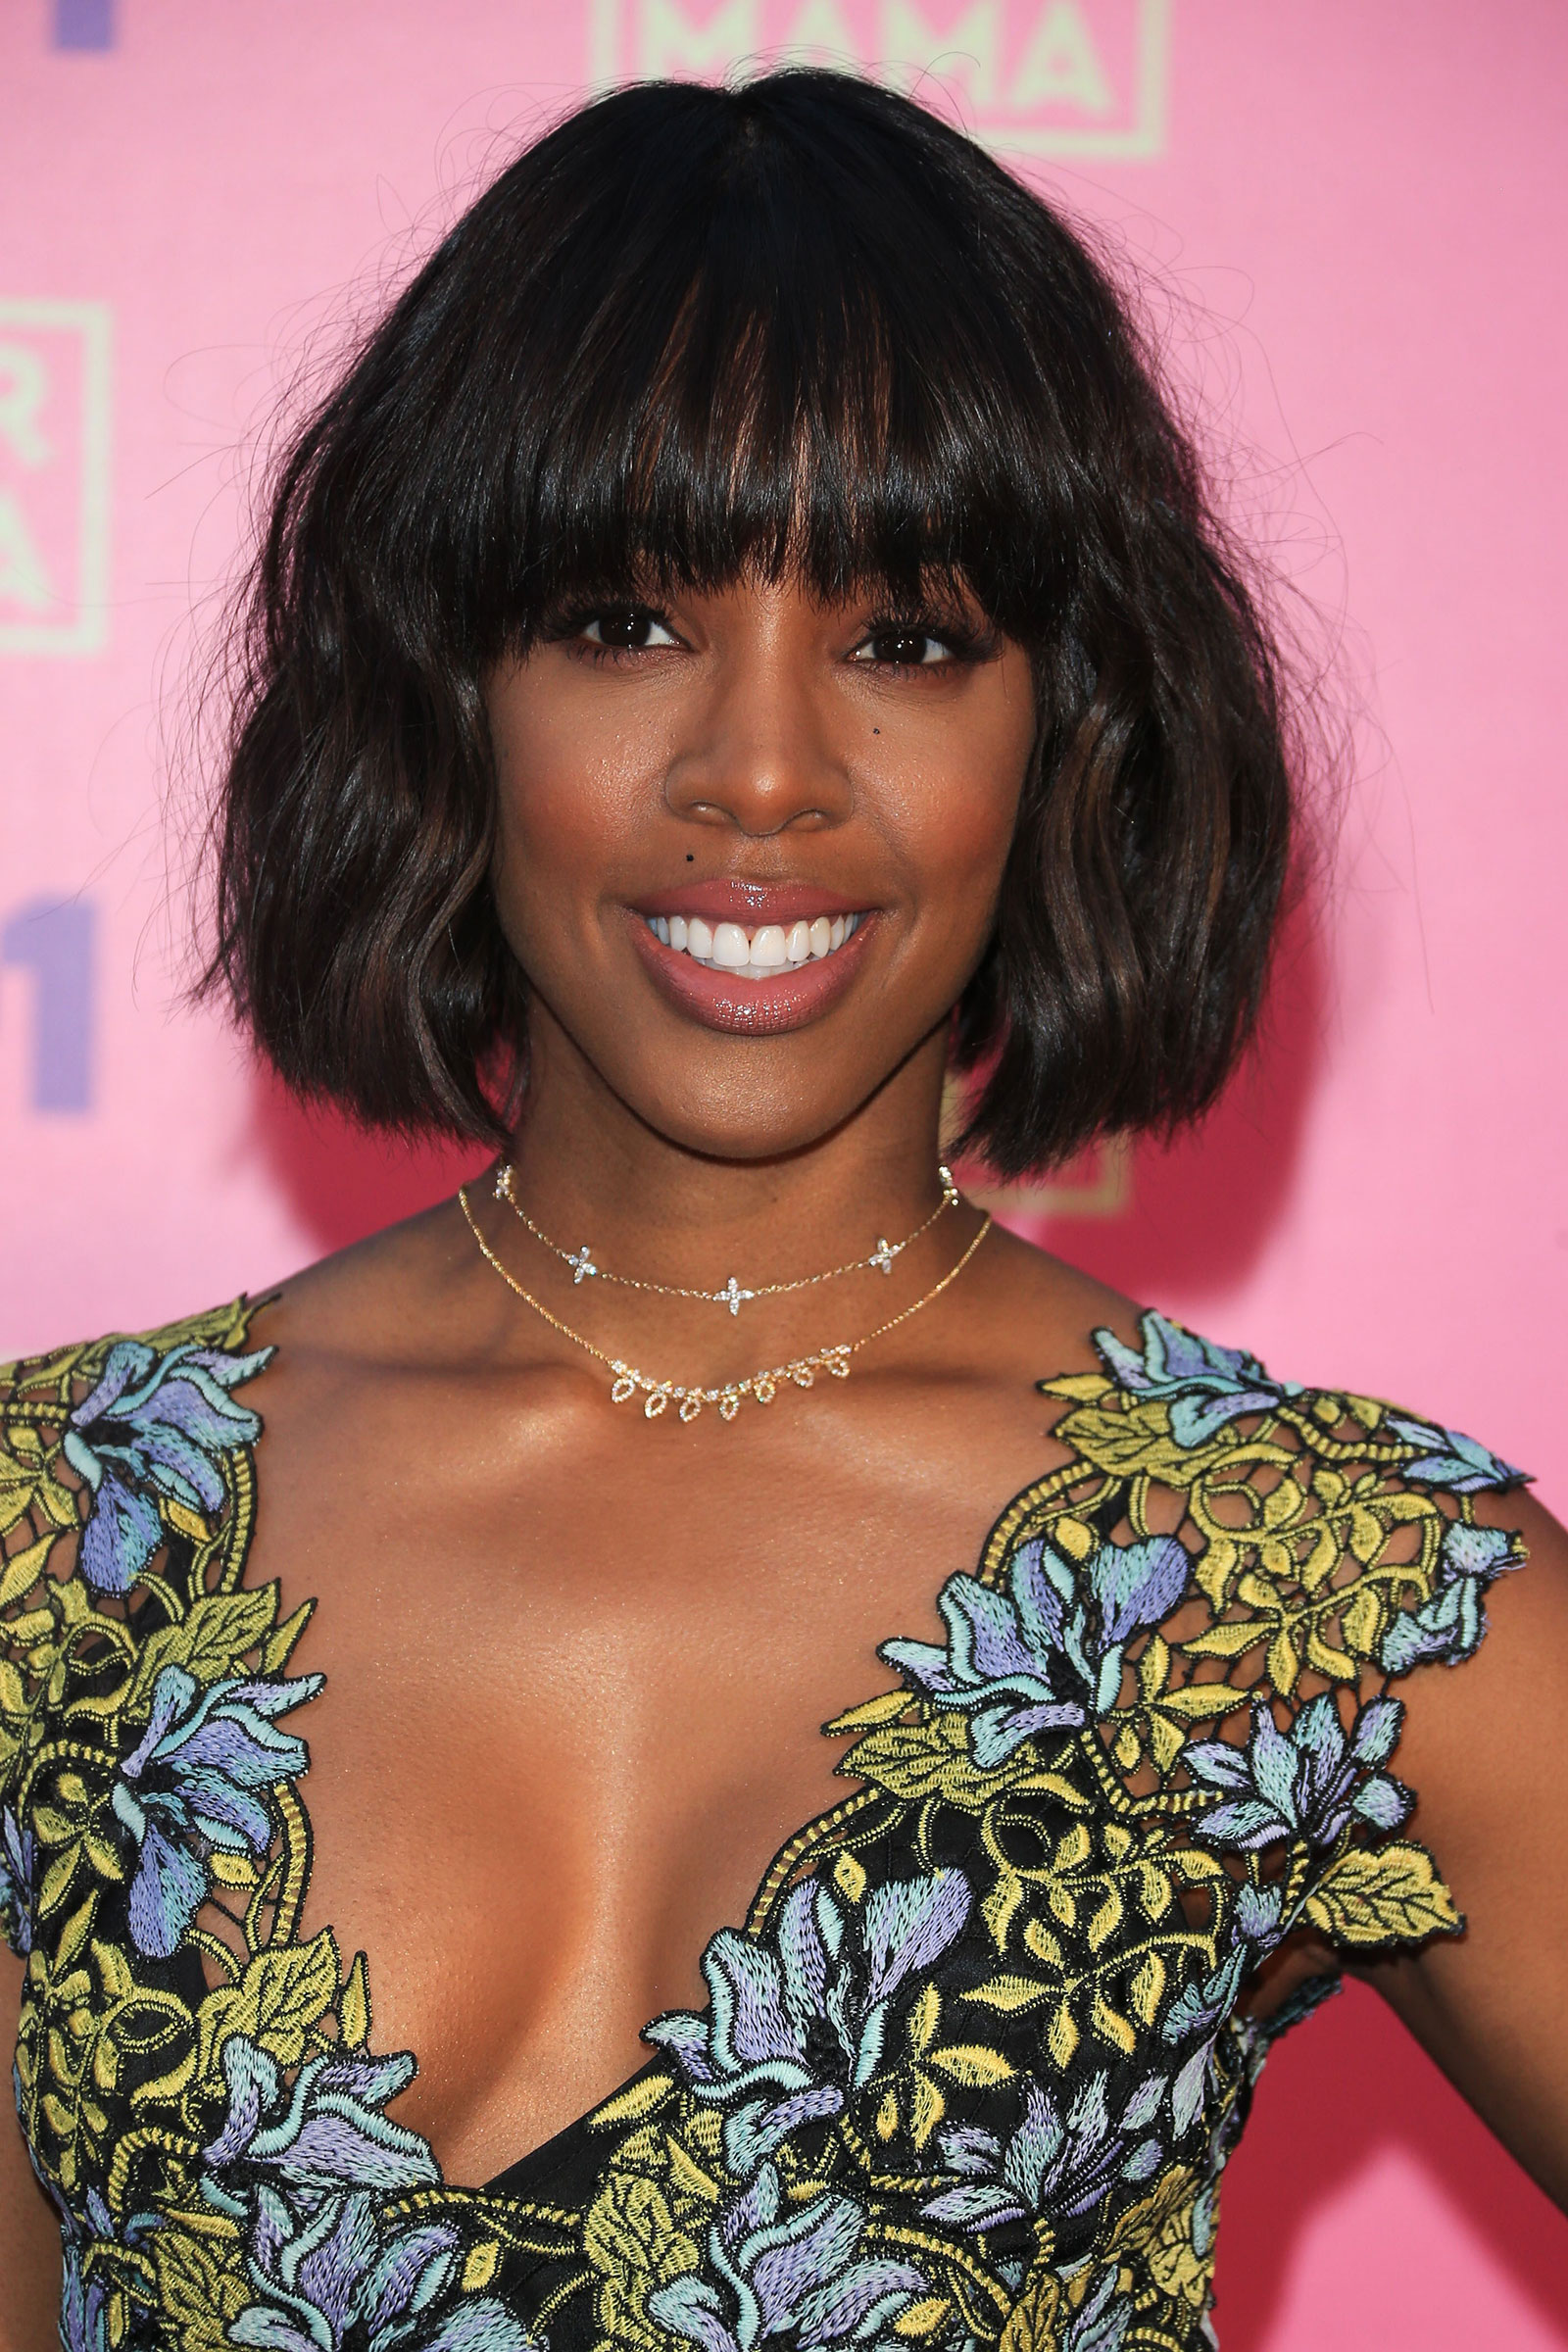 Kelly Rowland's tossled bob with bangs haircut